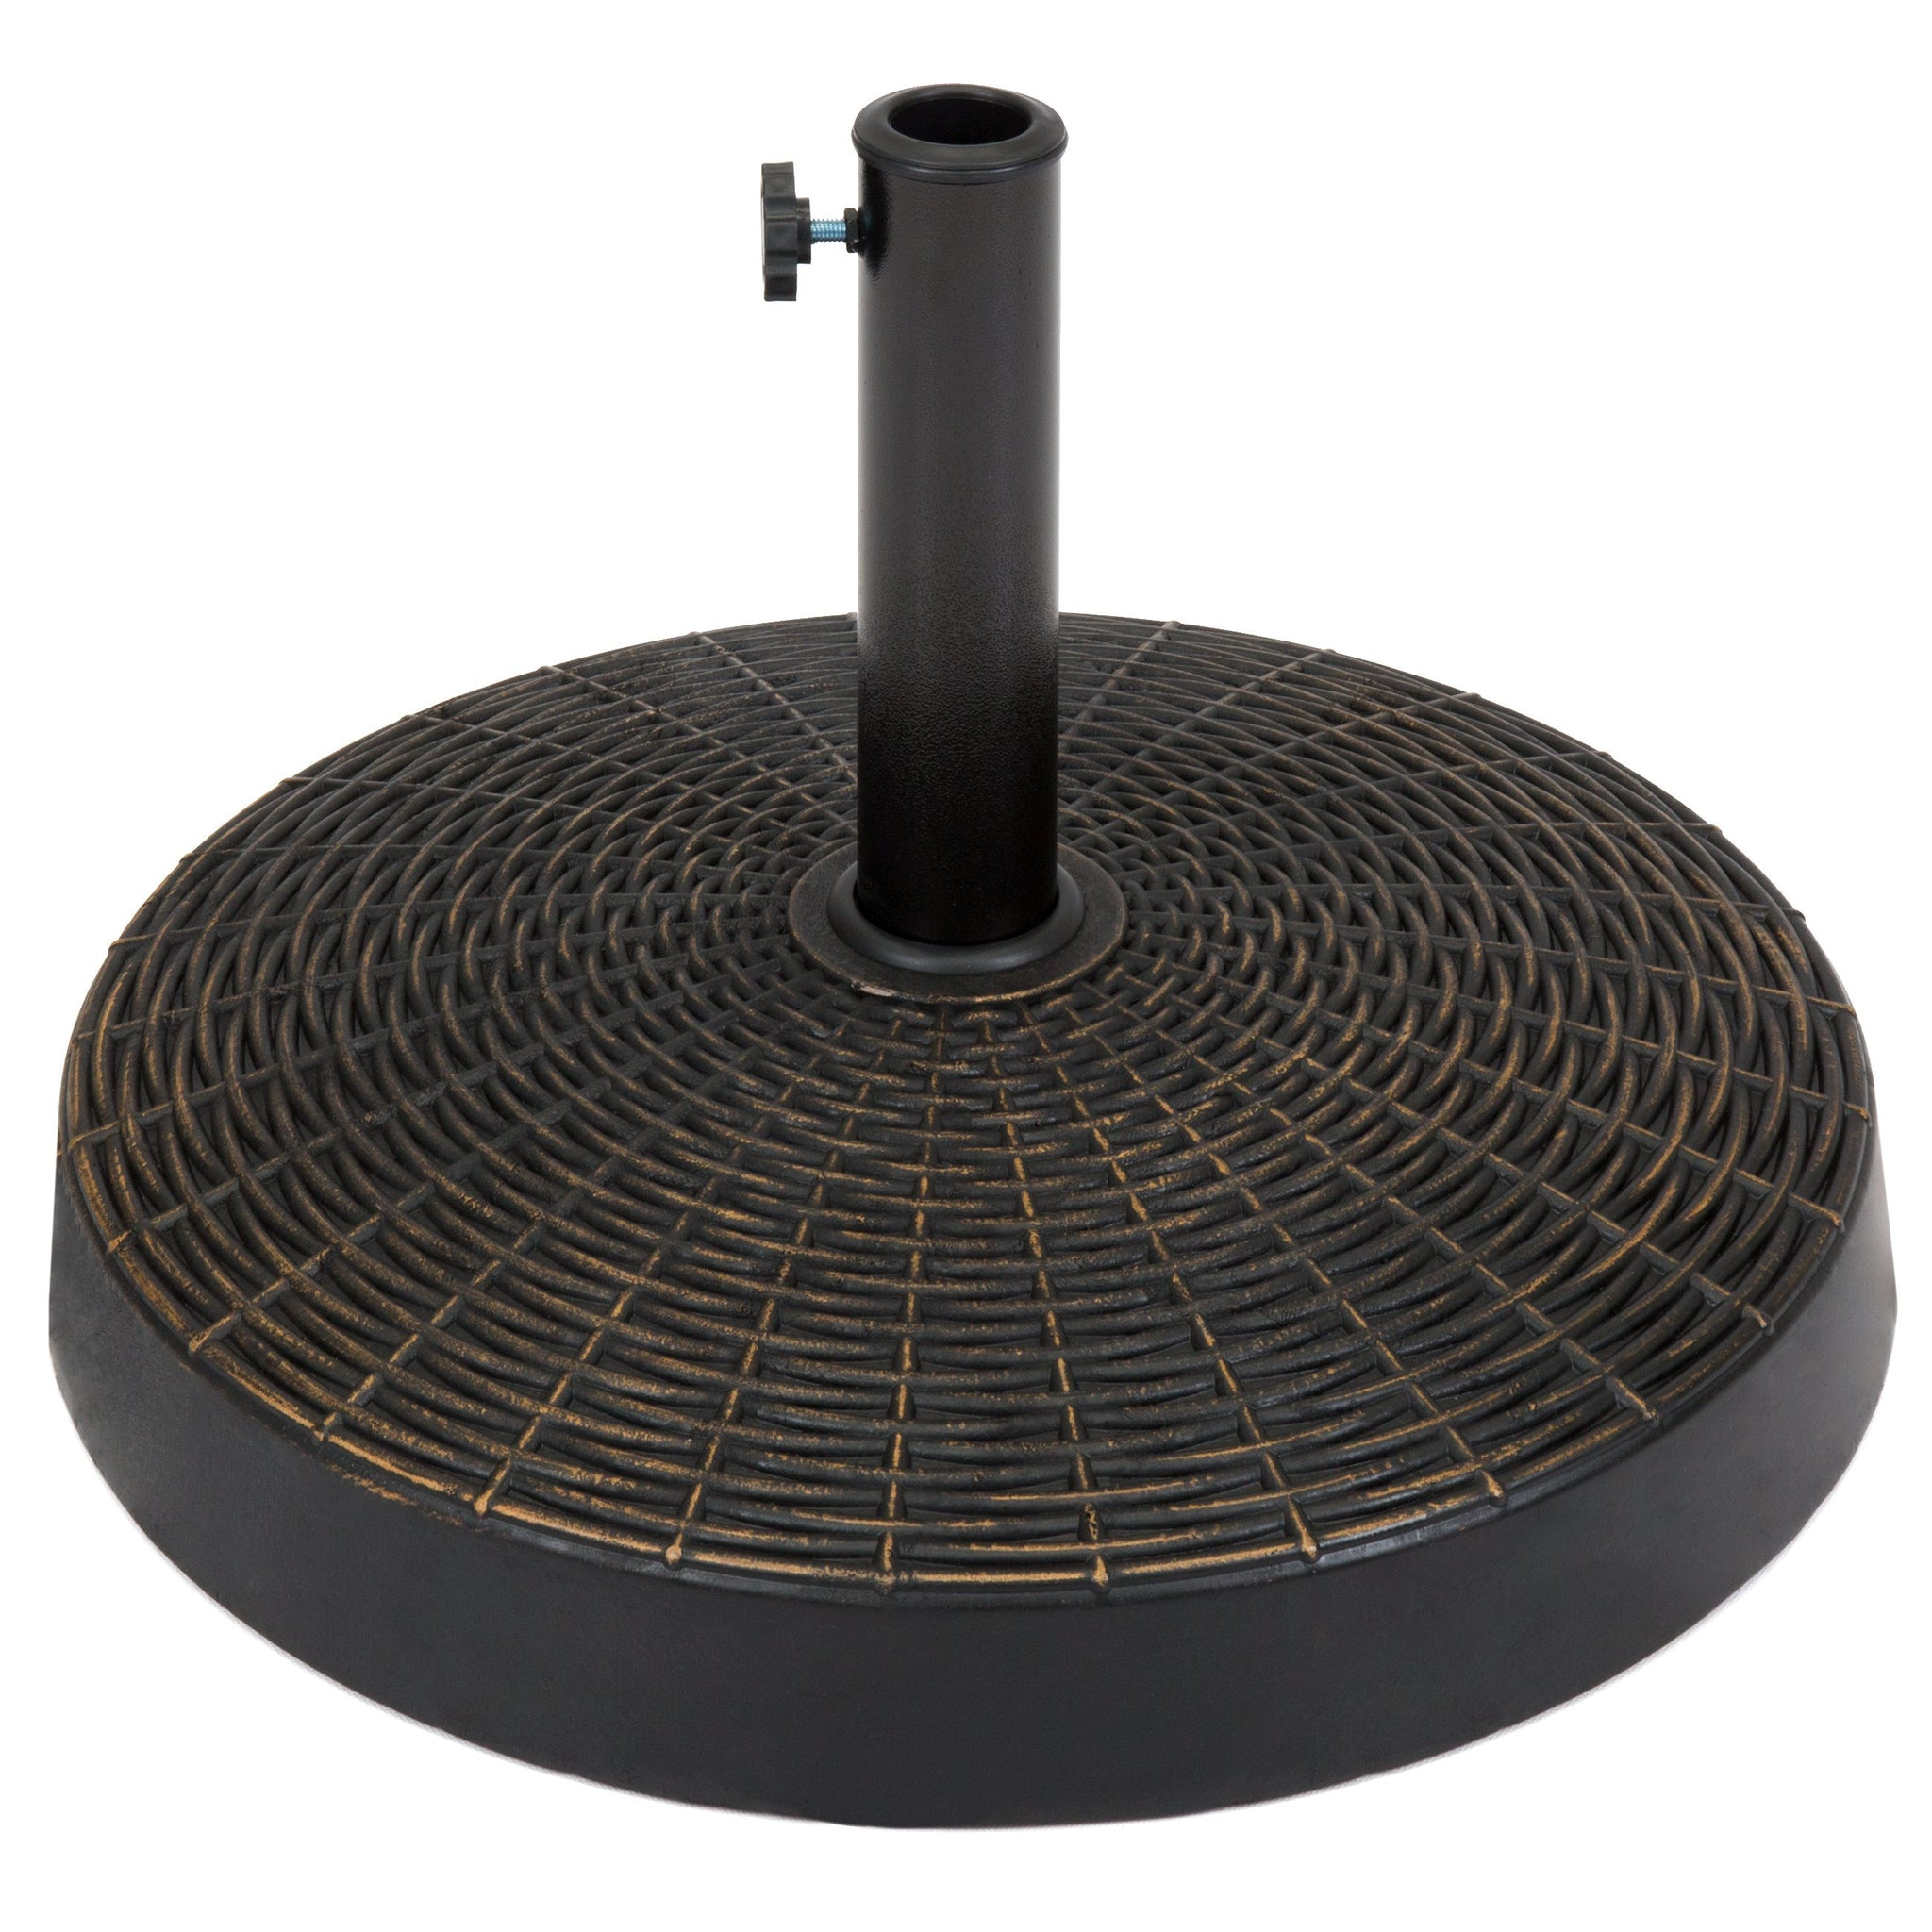 55lb Round Wicker Style Patio Umbrella Stand w/ Blackened Bronze Finish